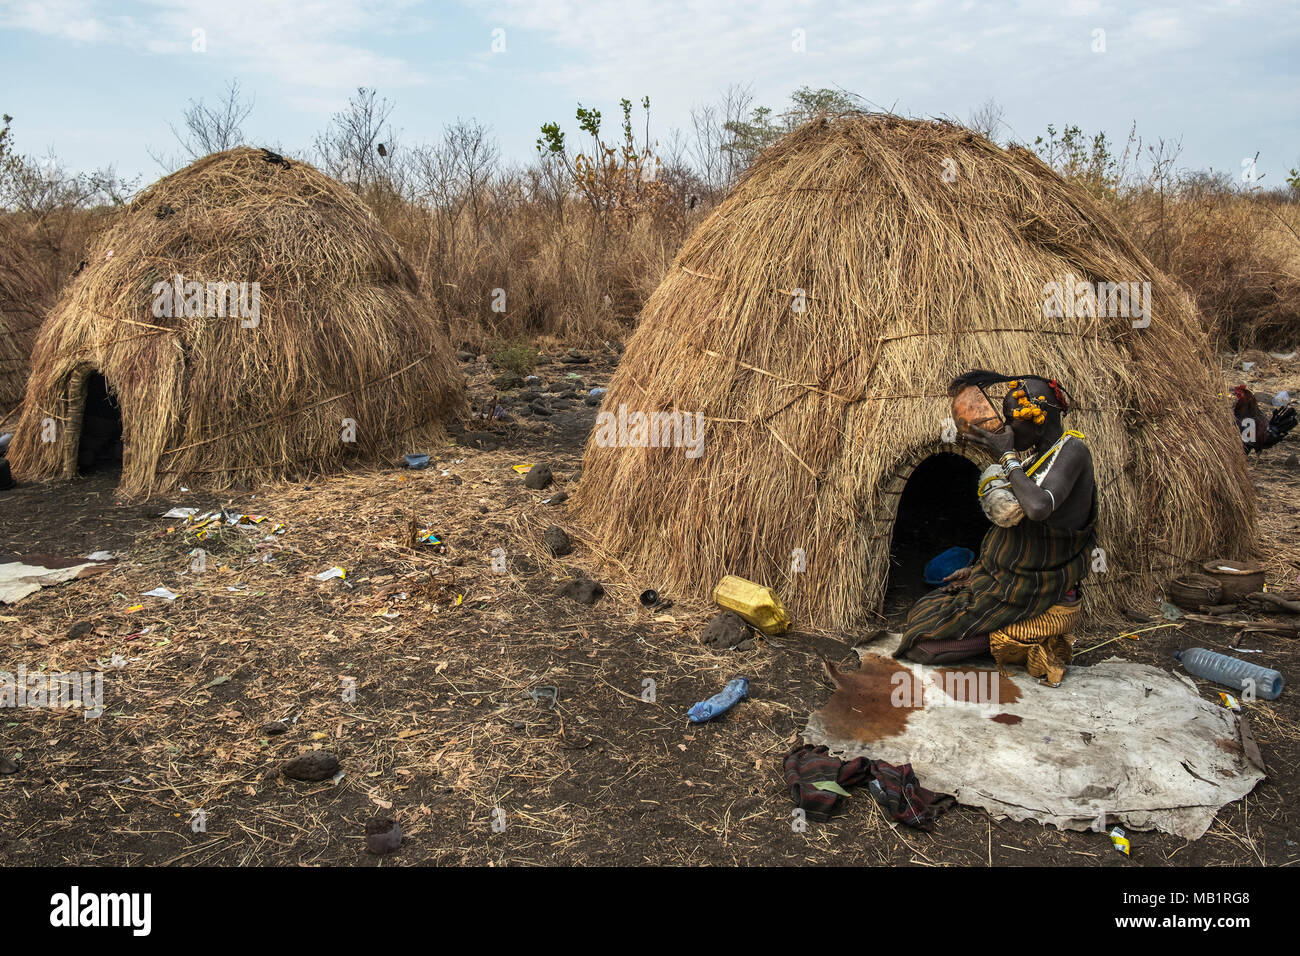 Omorate, Ethiopia - January 24, 2018: Woman of the Mursi tribe drinking in a bowl next to her house in a traditional village of the Mursi in Ethiopia. - Stock Image